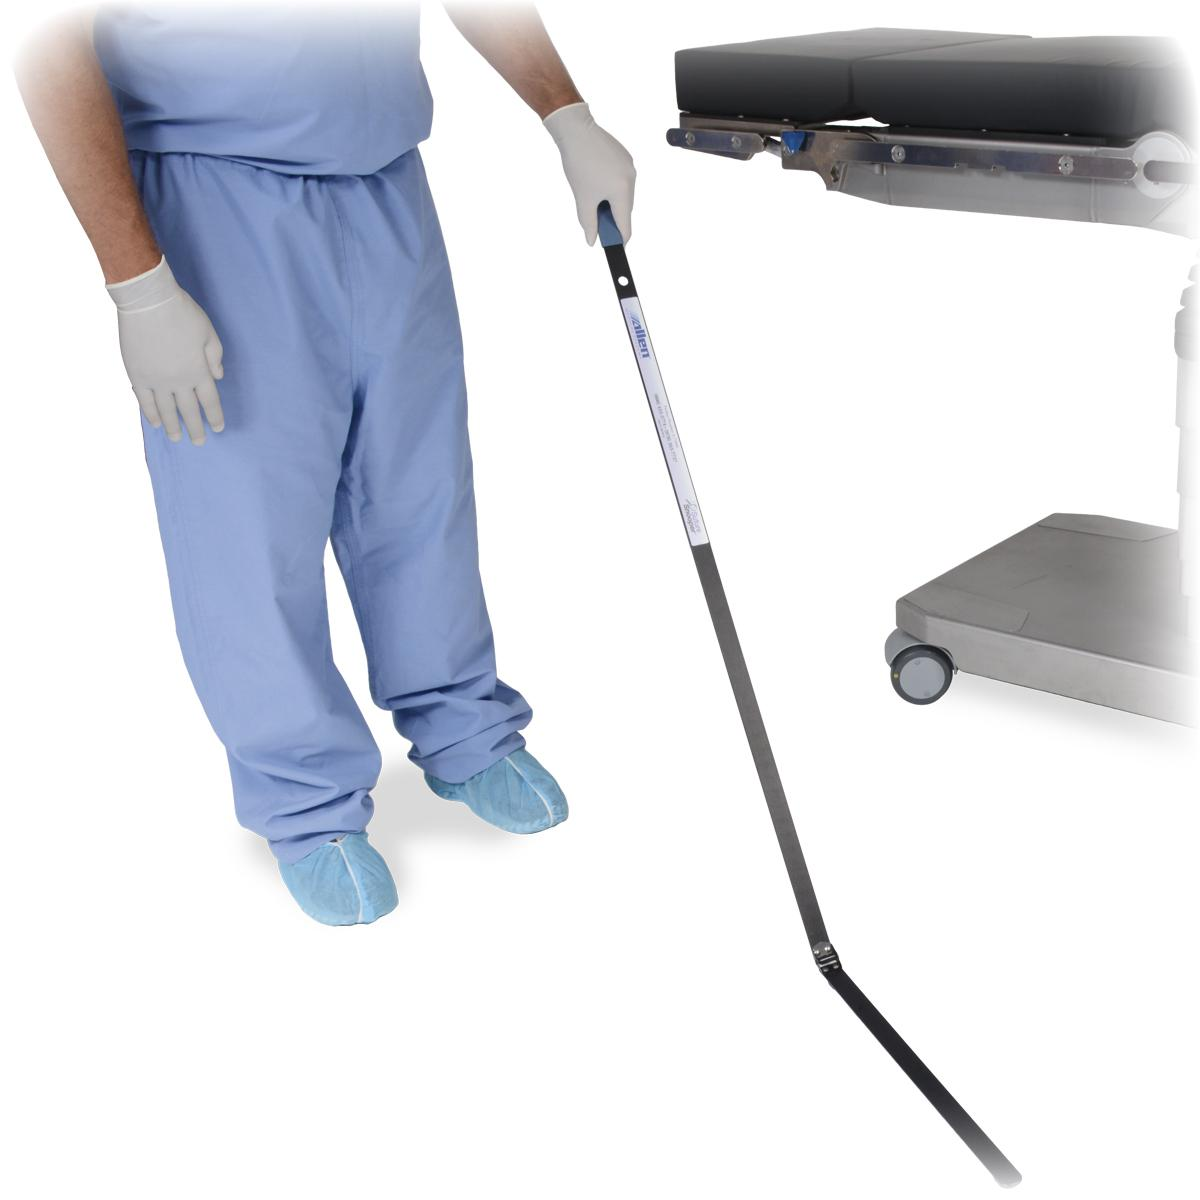 Needle Triever™ Device in use by nurse